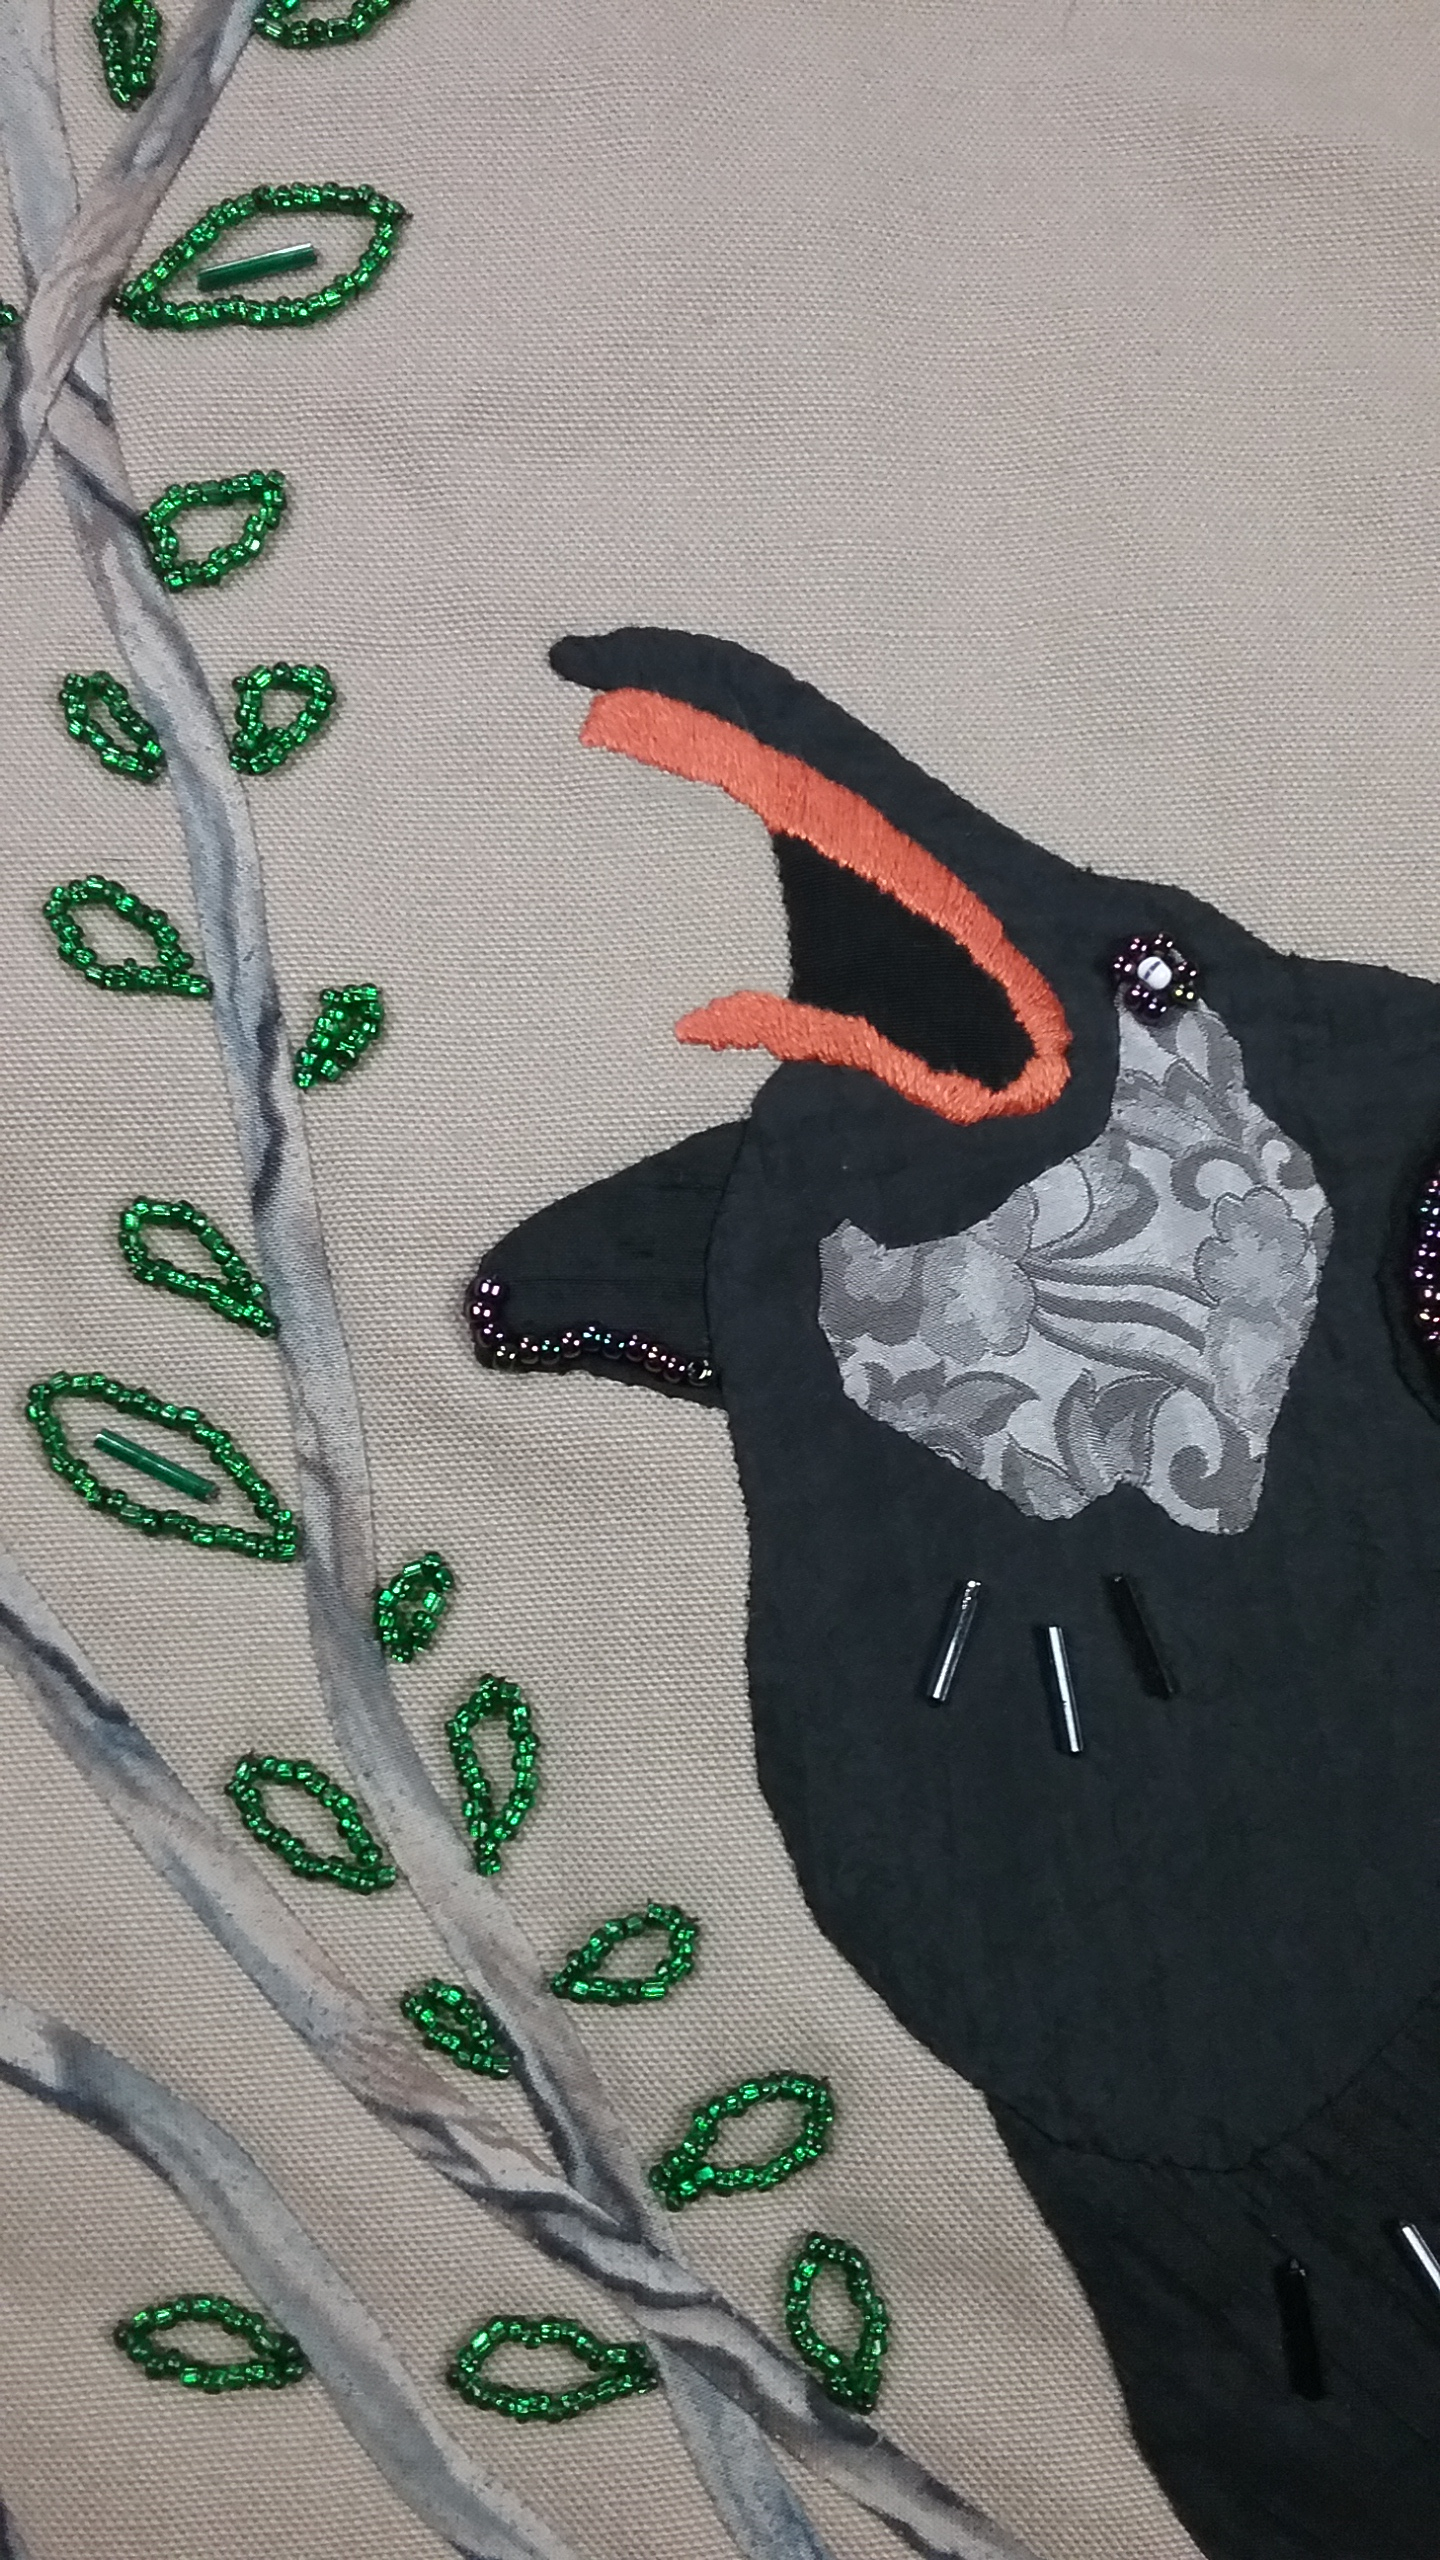 Corvid bag, pouch detail, applique and bead applique, by Mary Warner, 2017.